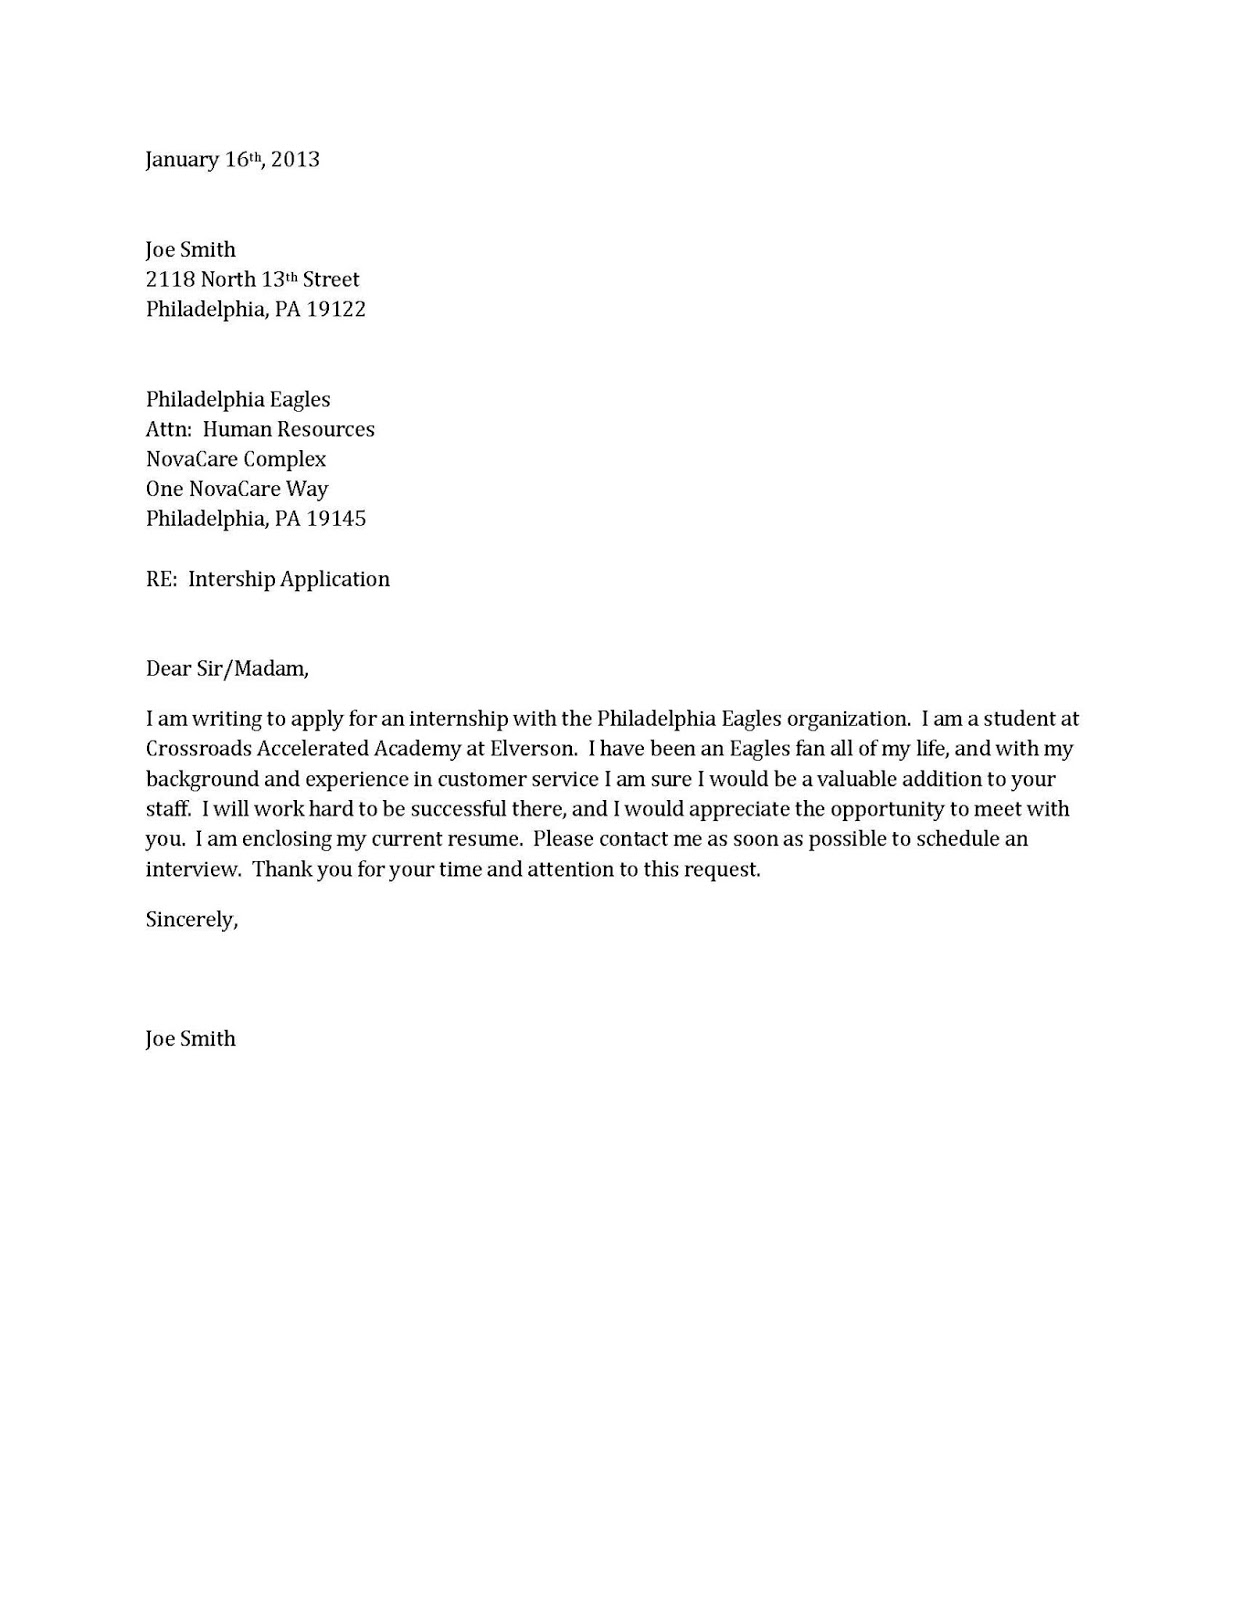 resume introduction letter resume cover letter introduction a resumes for teachers